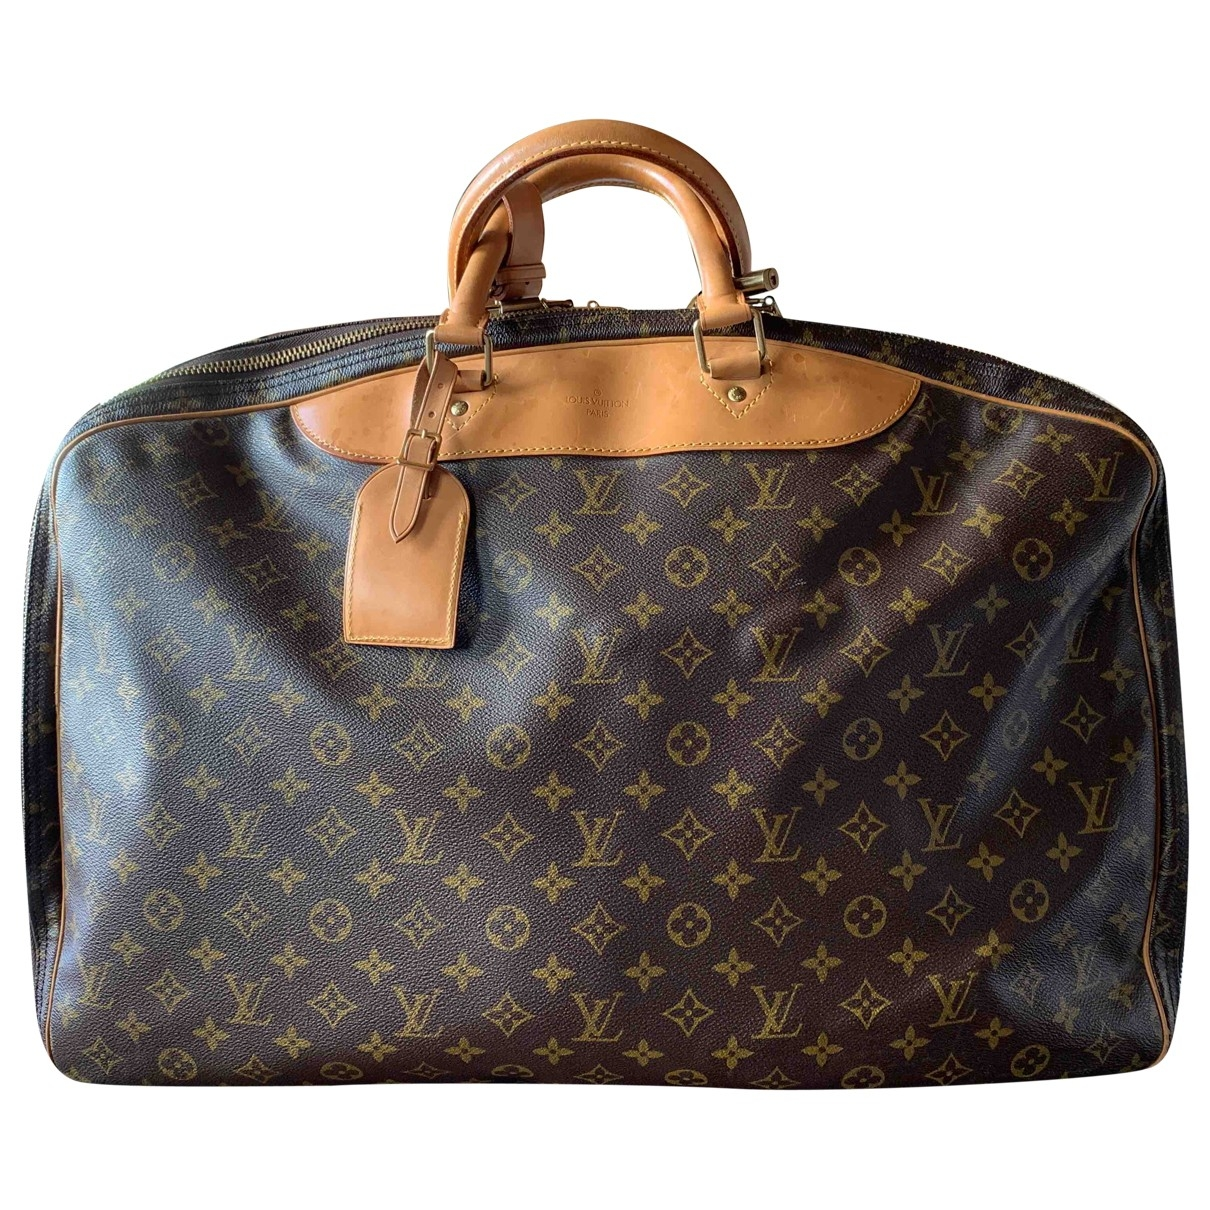 Louis Vuitton \N Reisetasche in  Braun Leinen